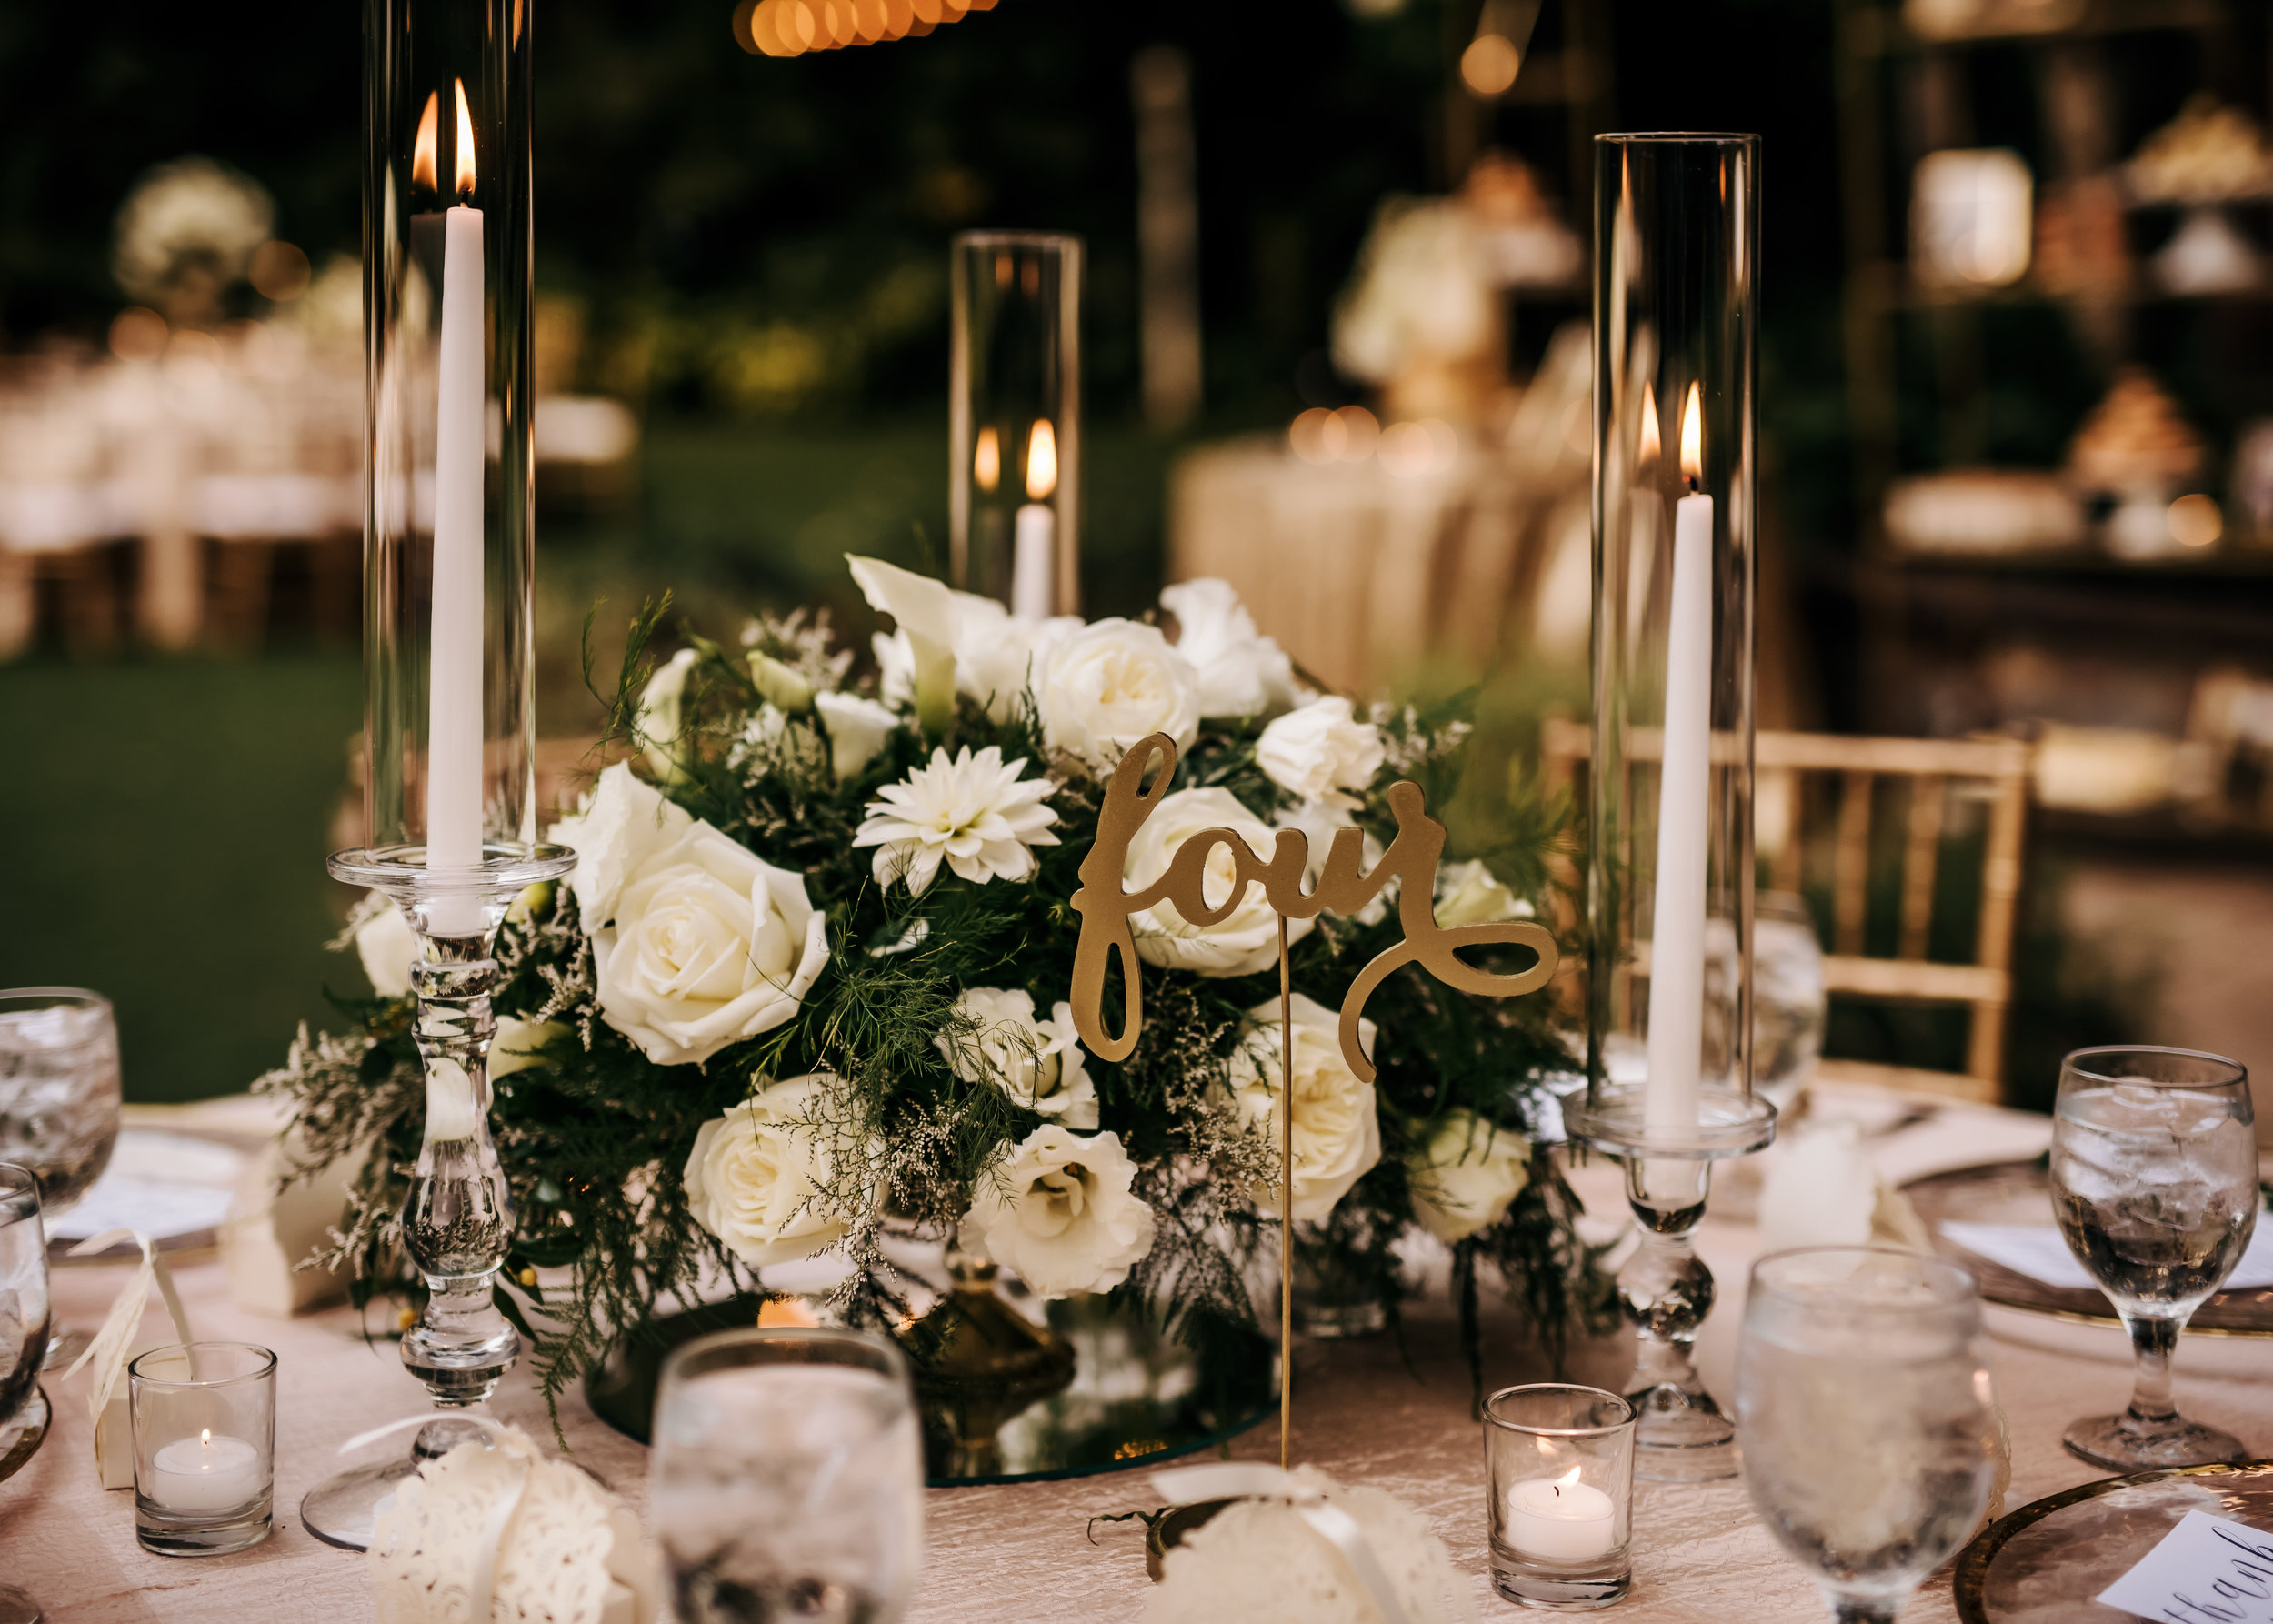 Turchin_20180825_Austinae-Brent-Wedding_428.jpg